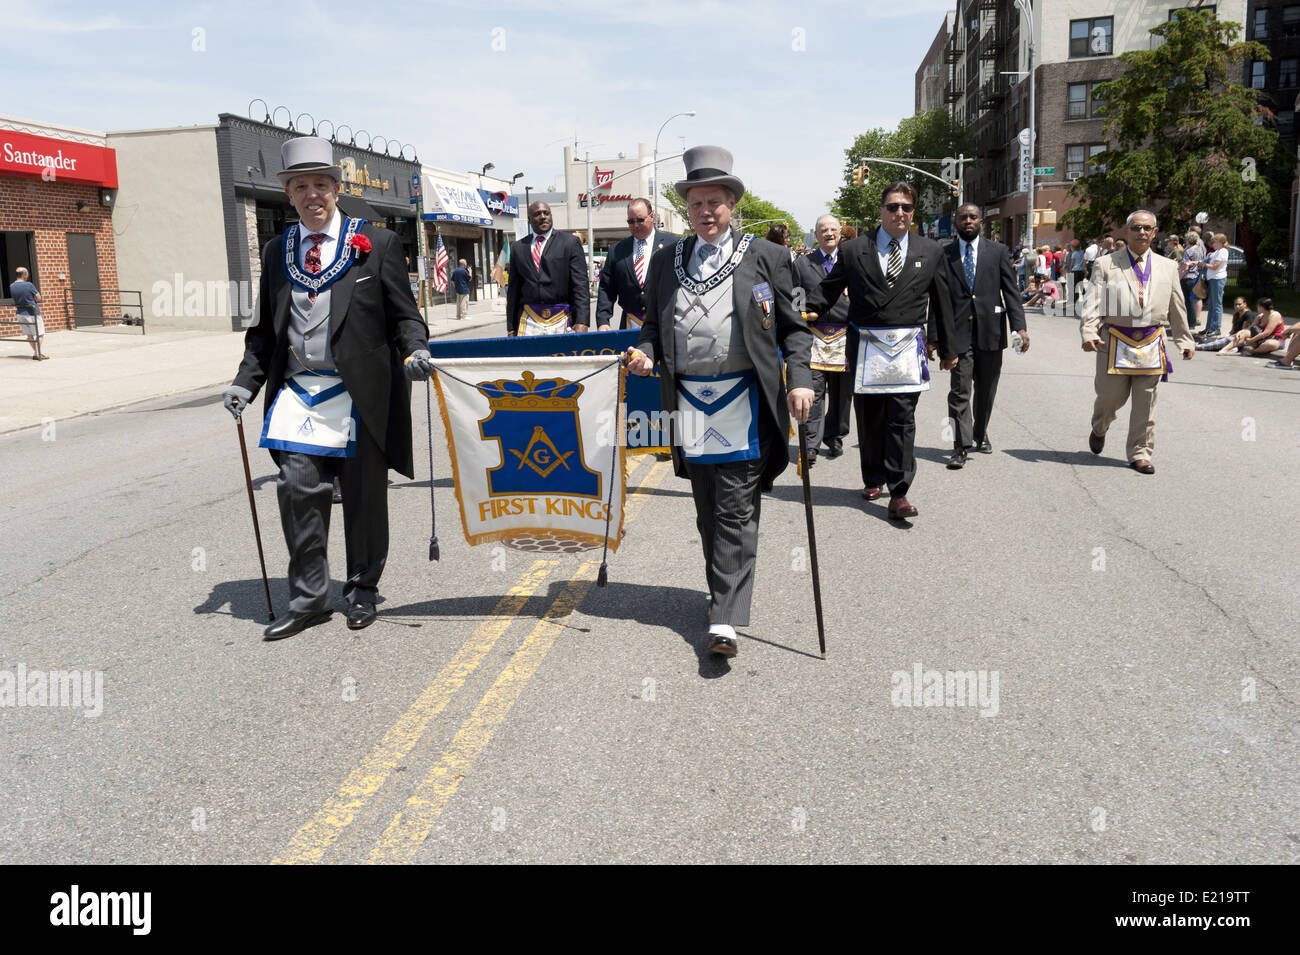 Freemasons march in The Kings County Memorial Day Parade in the Bay Ridge Section of Brooklyn, NY, May 26, 2014. - Stock Image